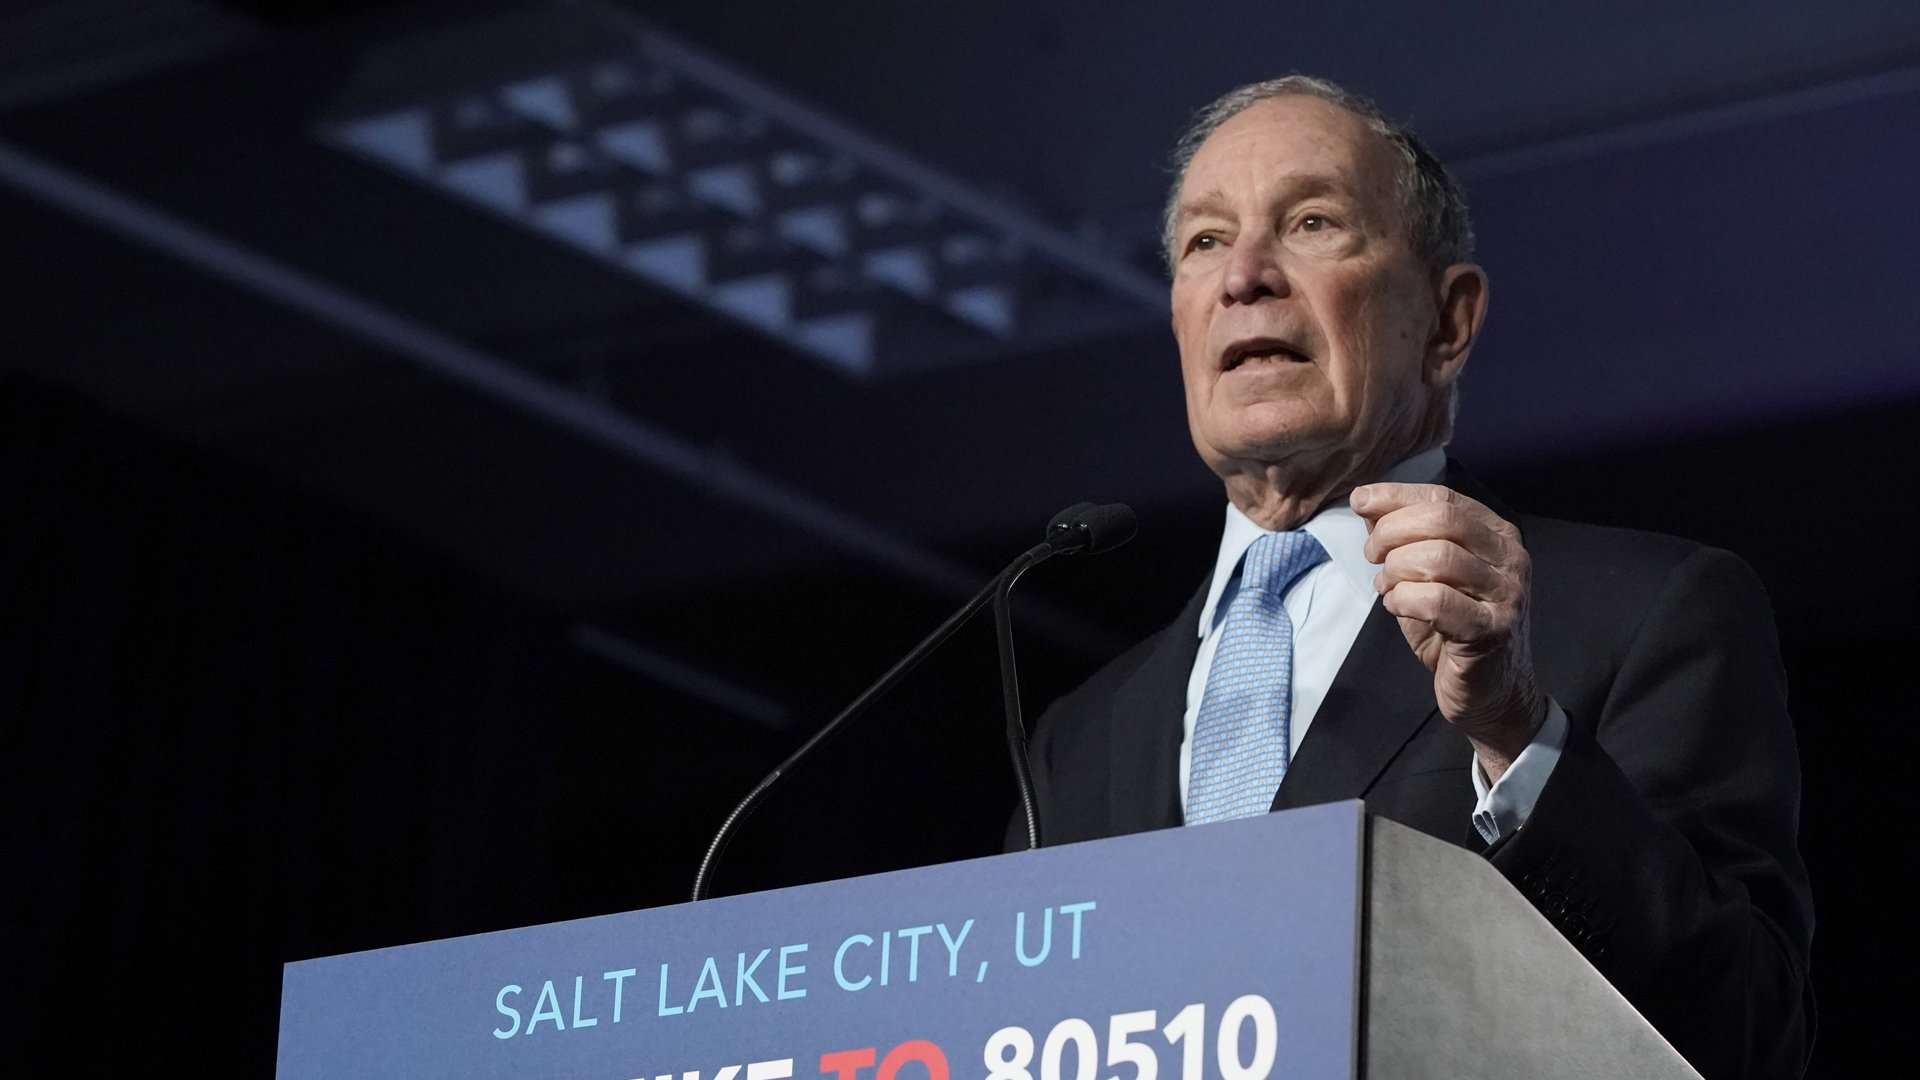 Democratic presidential candidate, former New York City mayor Mike Bloomberg talks to supporters at a rally in Salt Lake City, Utah, on Feb. 20, 2020. (Credit: George Frey / Getty Images)